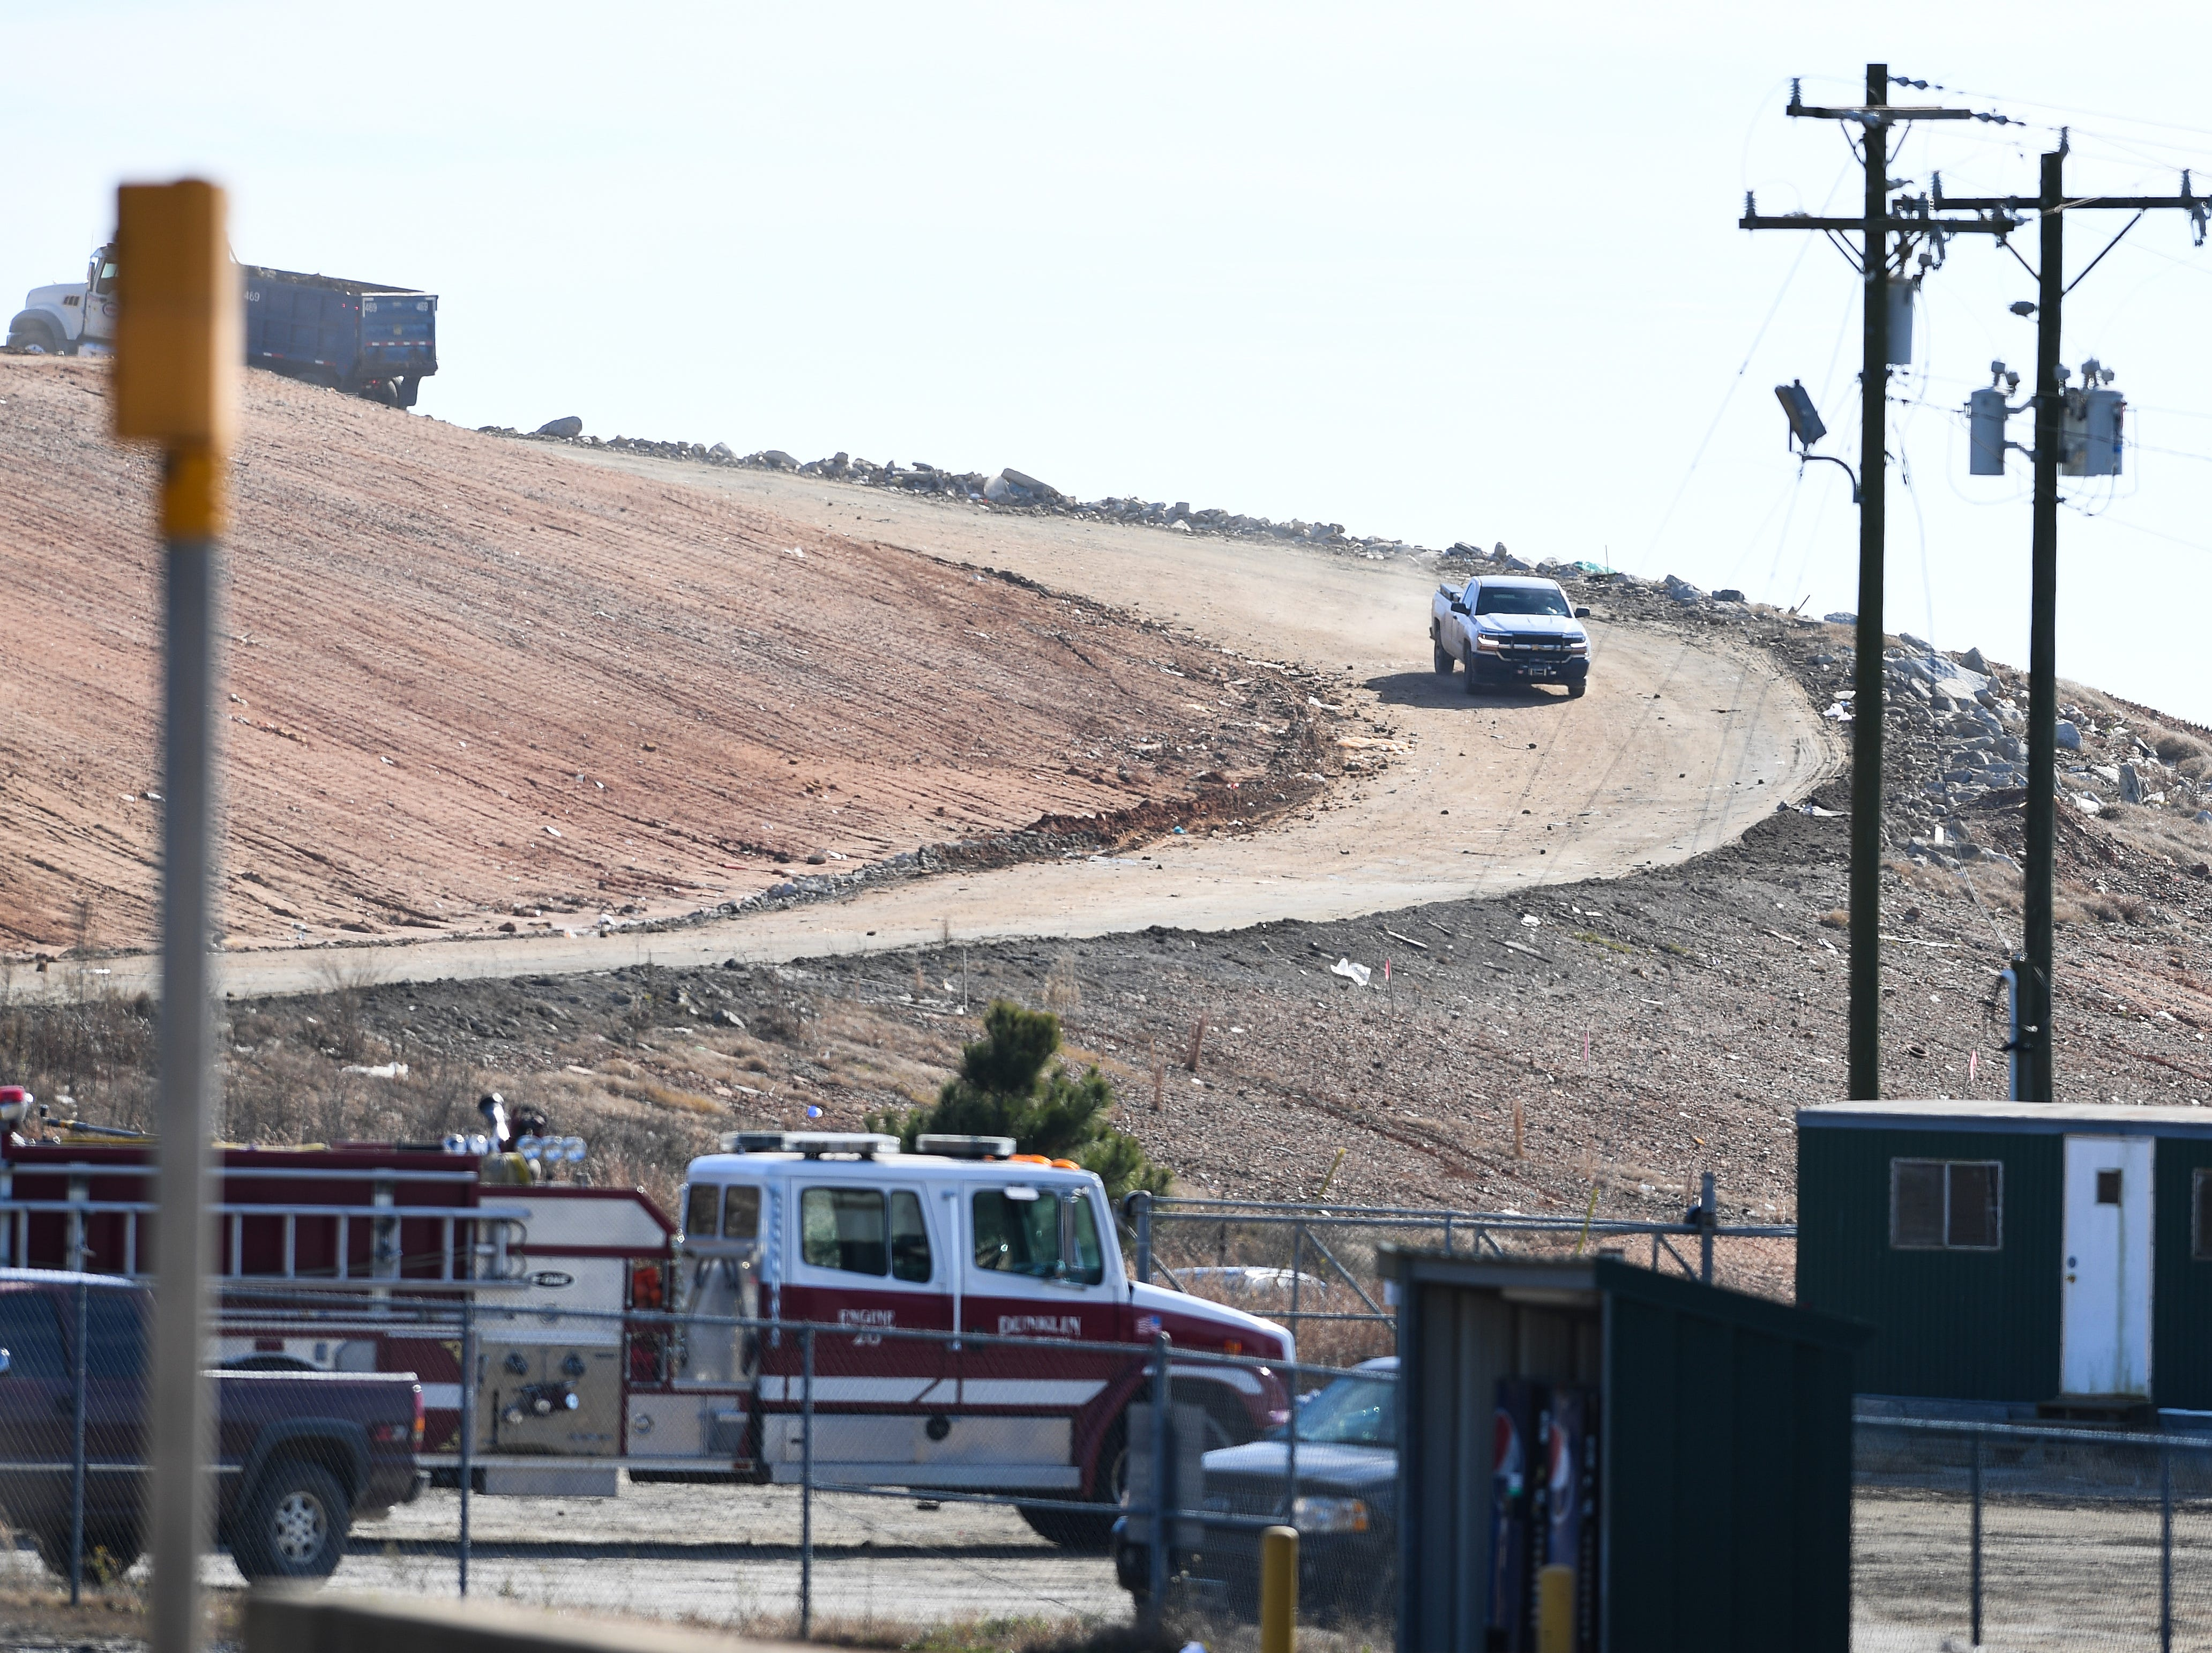 Twin Chimneys Landfill in Greenville County where an infant body was found Thursday, November 29, 2018.